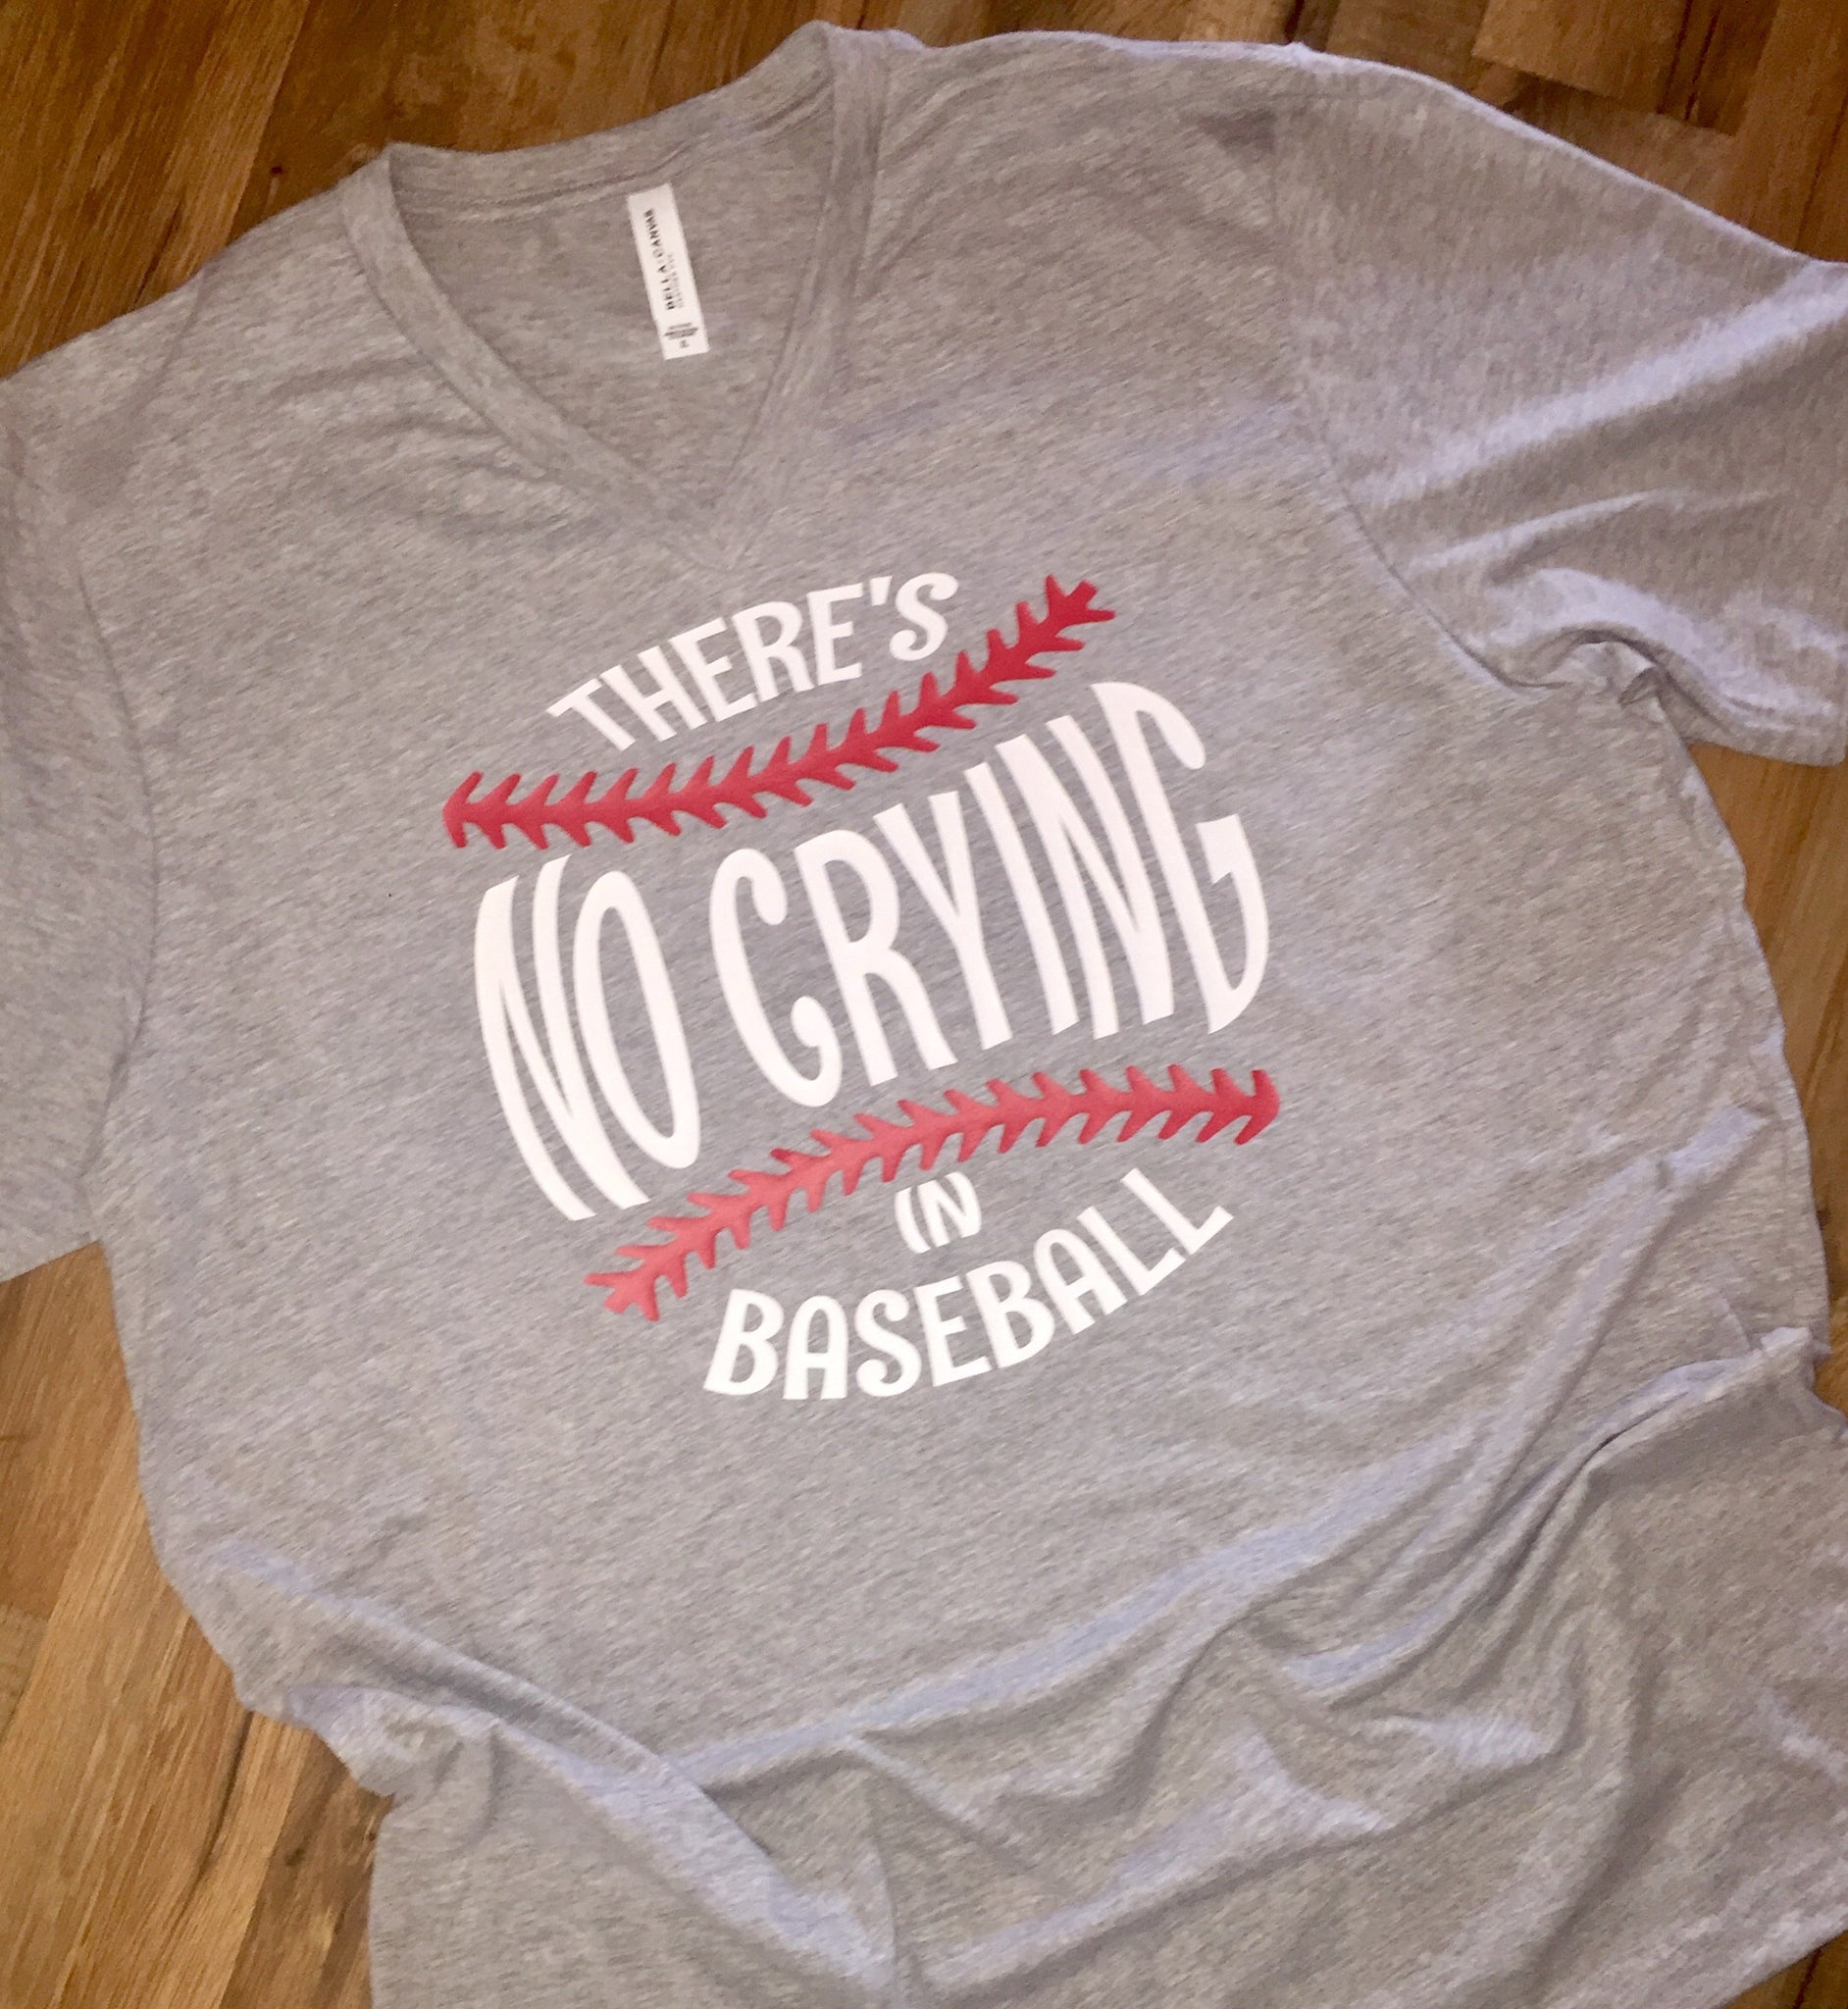 6eb77c8e2 ... Load image into Gallery viewer, There's no crying in baseball or  softball printed shirt or